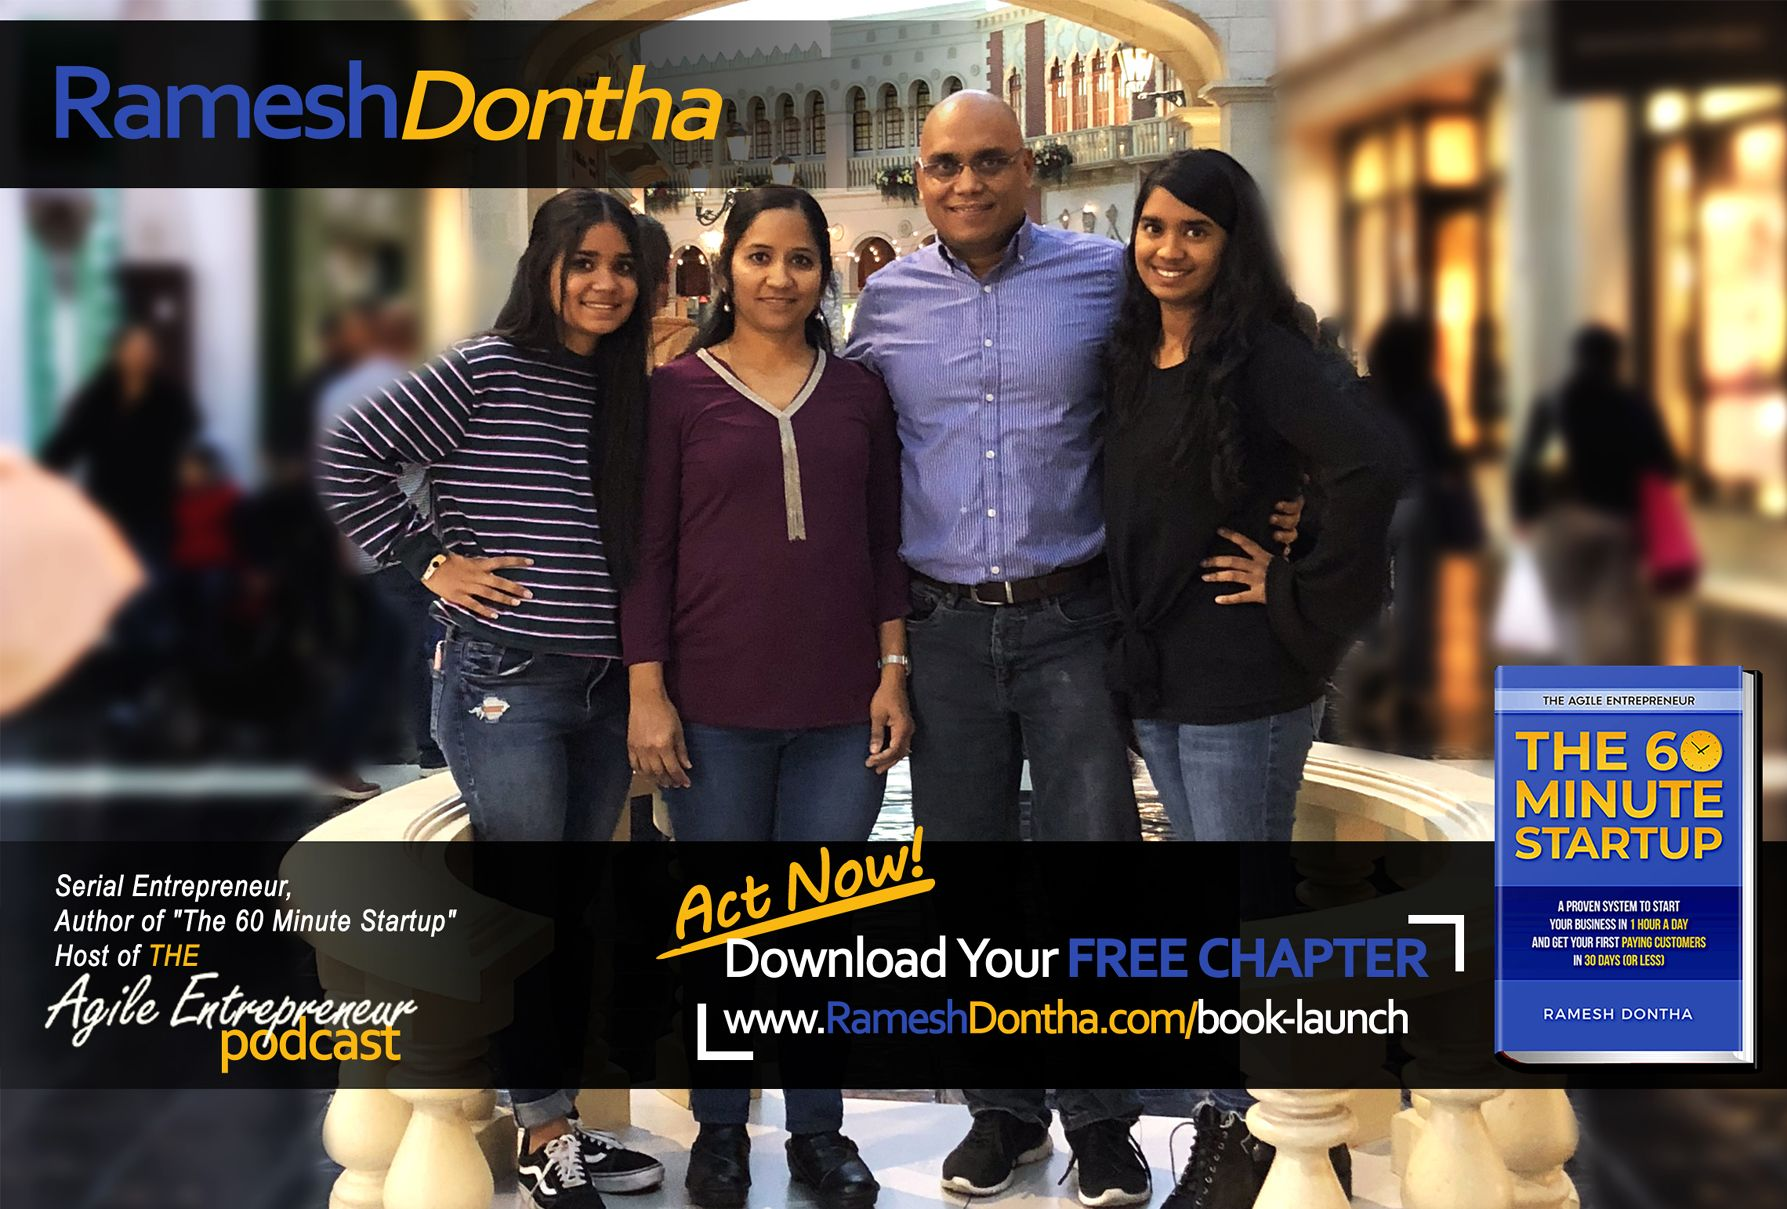 Ramesh Dontha author of The 60 Minute Startup